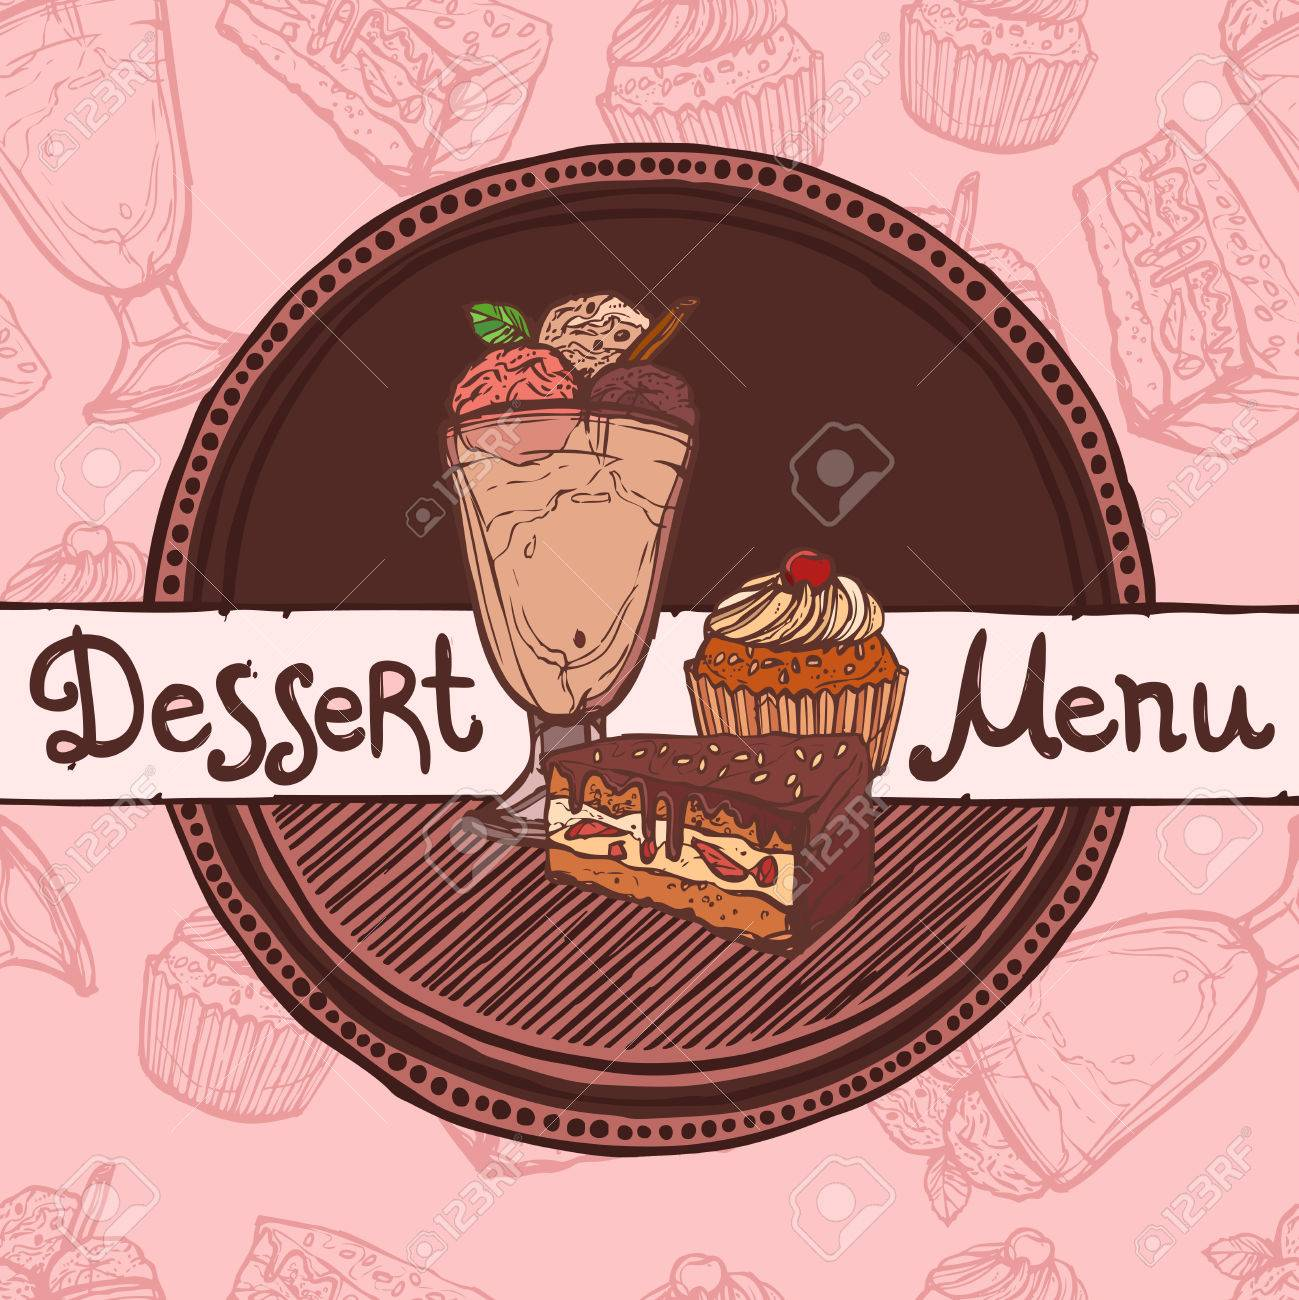 Restaurant Cafe Dessert Sketch Menu Template With Sweet Cakes And Ice Cream  Vector Illustration Stock Vector  Dessert Menu Template